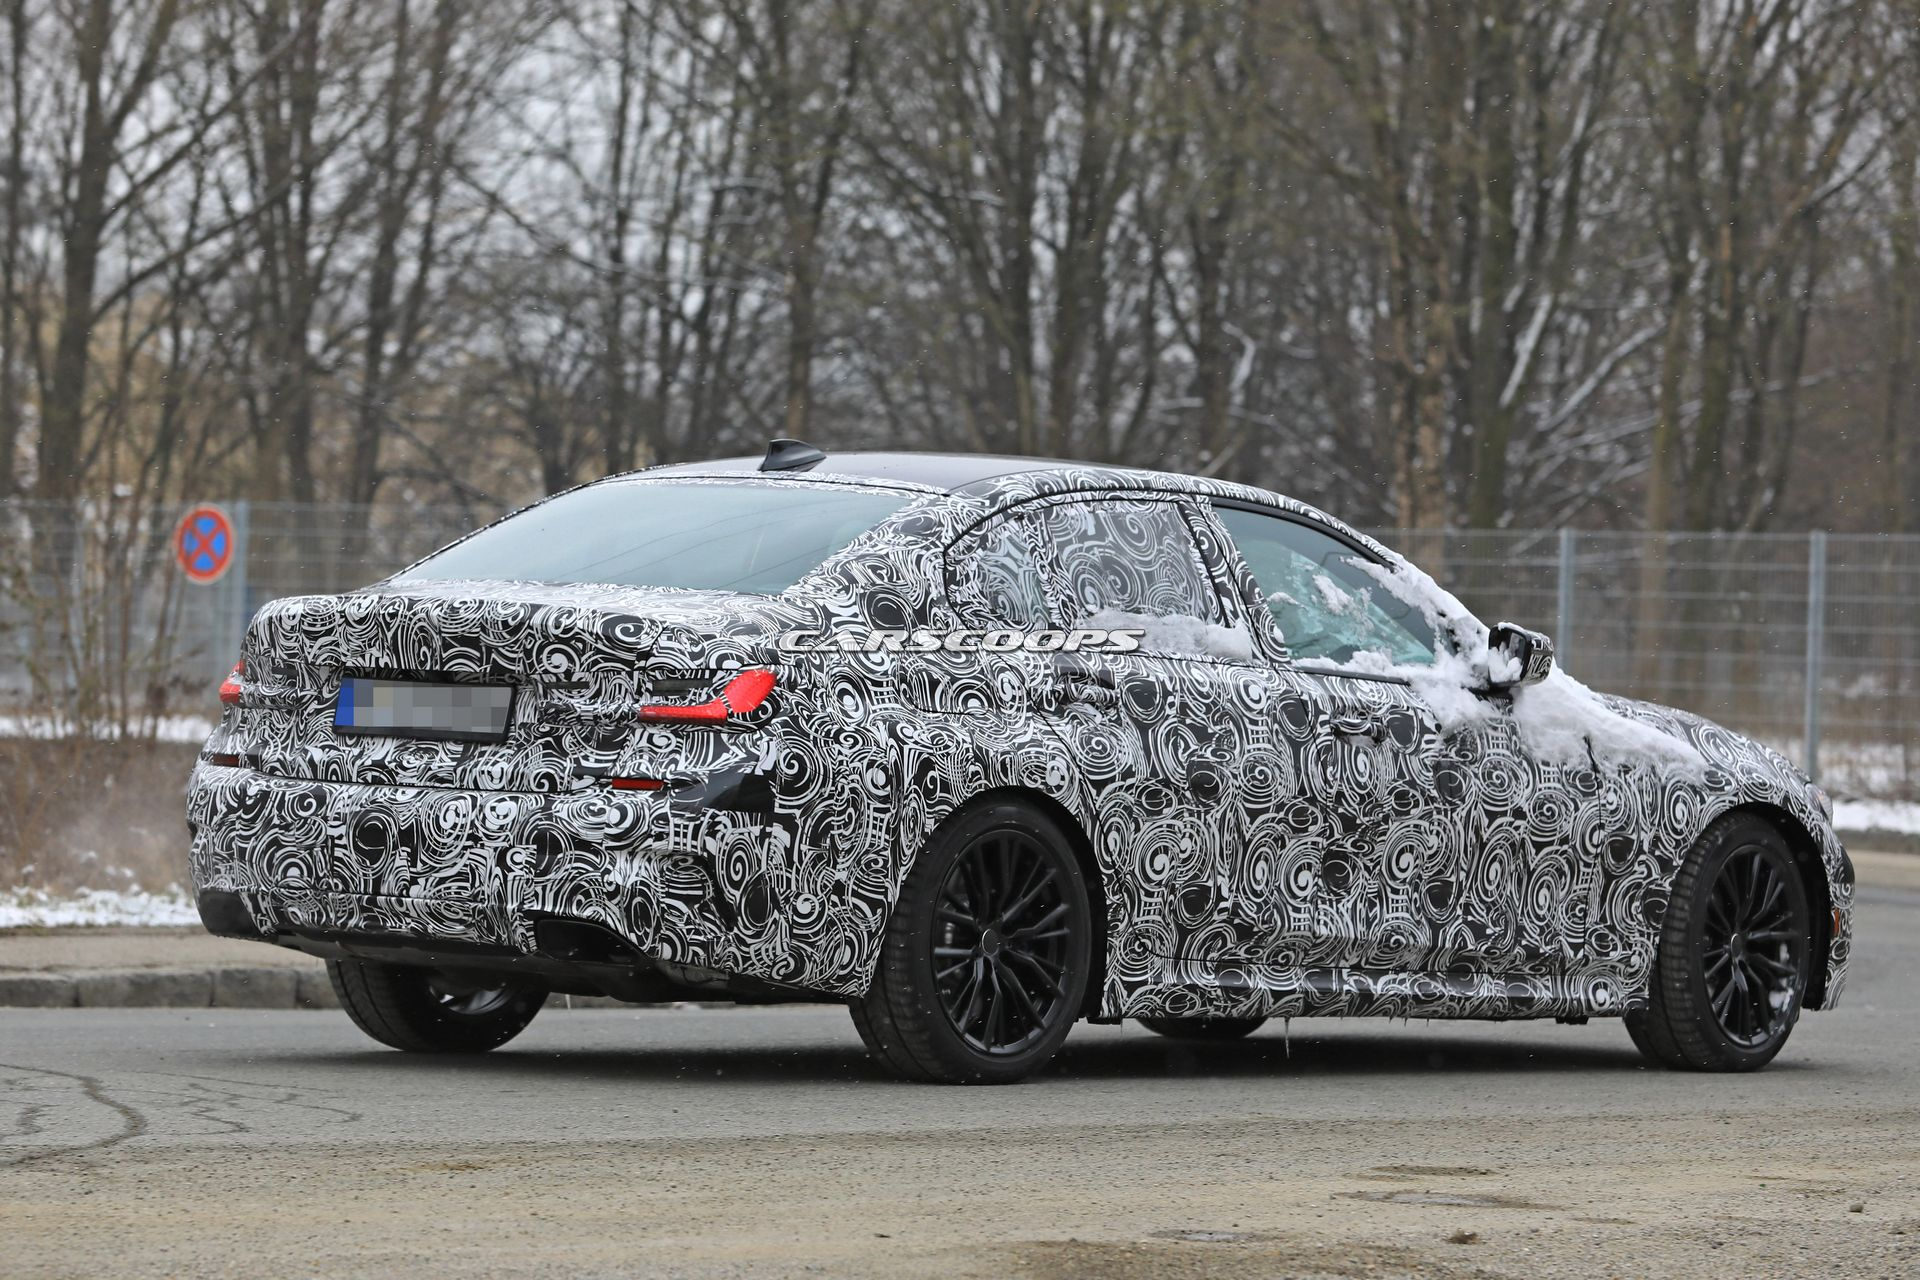 2019 Bmw 3 Series Spied In Base M Sport And M340i Performance Guises Carscoops